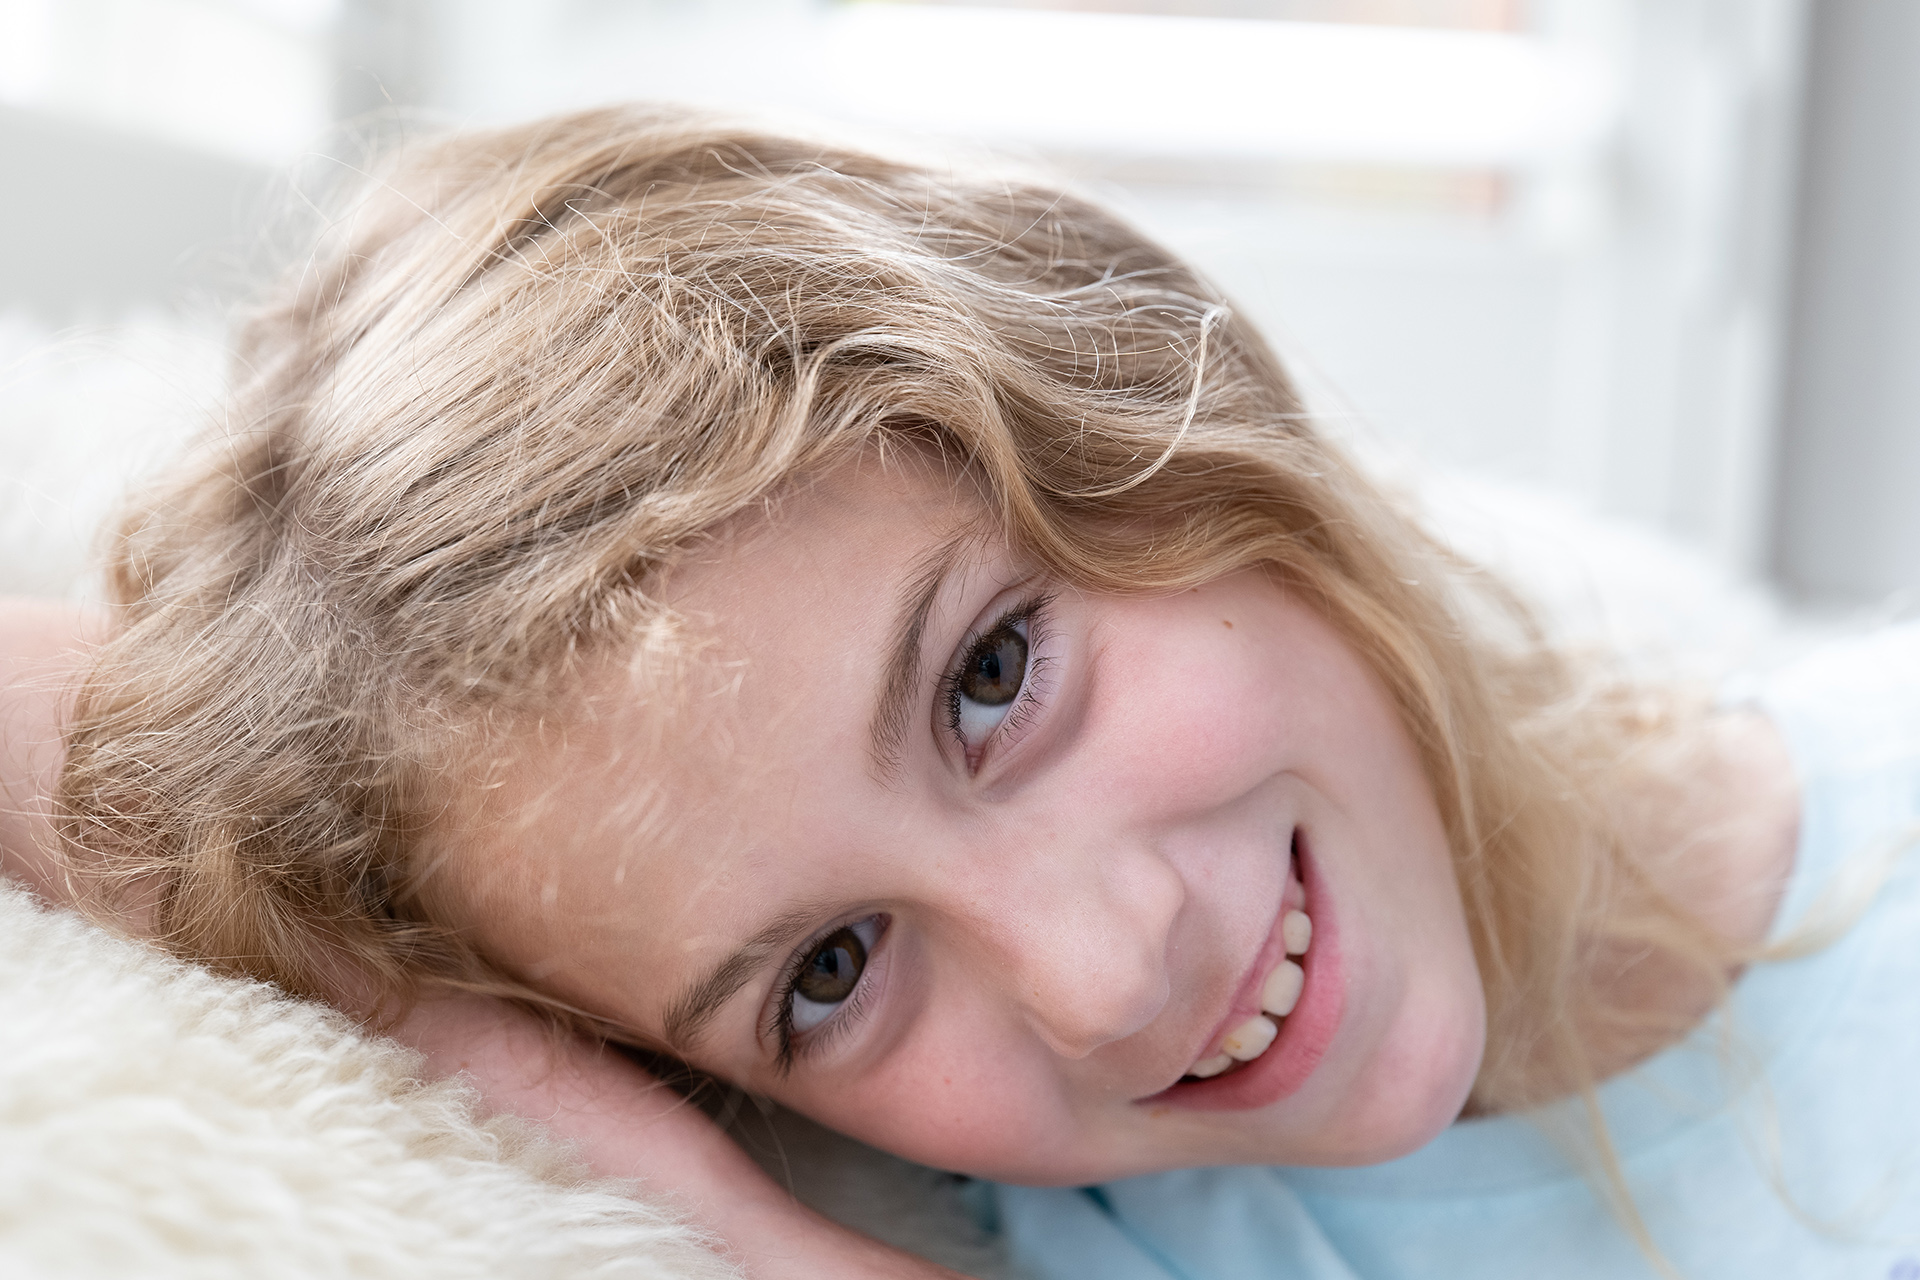 High key portrait of girl with blonde hair resting against shaggy white blanket, photographed using Panasonic Lumix S PRO 24-70mm f2.8 lens